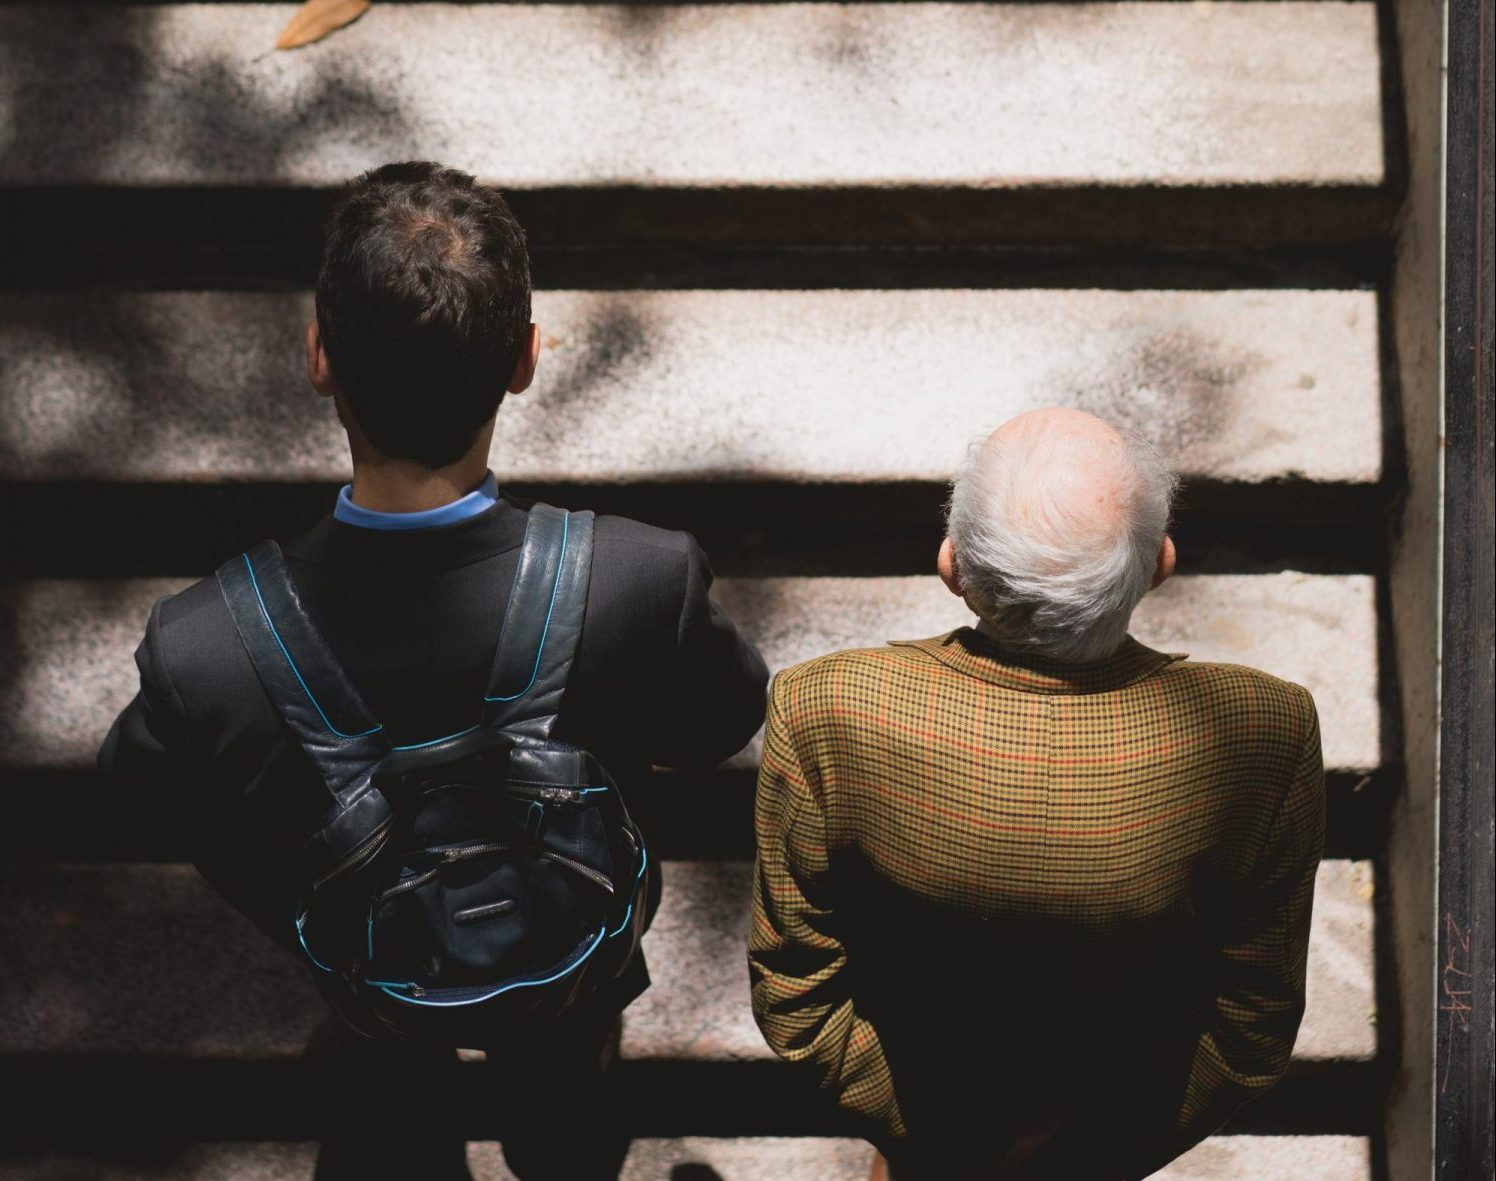 Part 2: How to lead across generations?